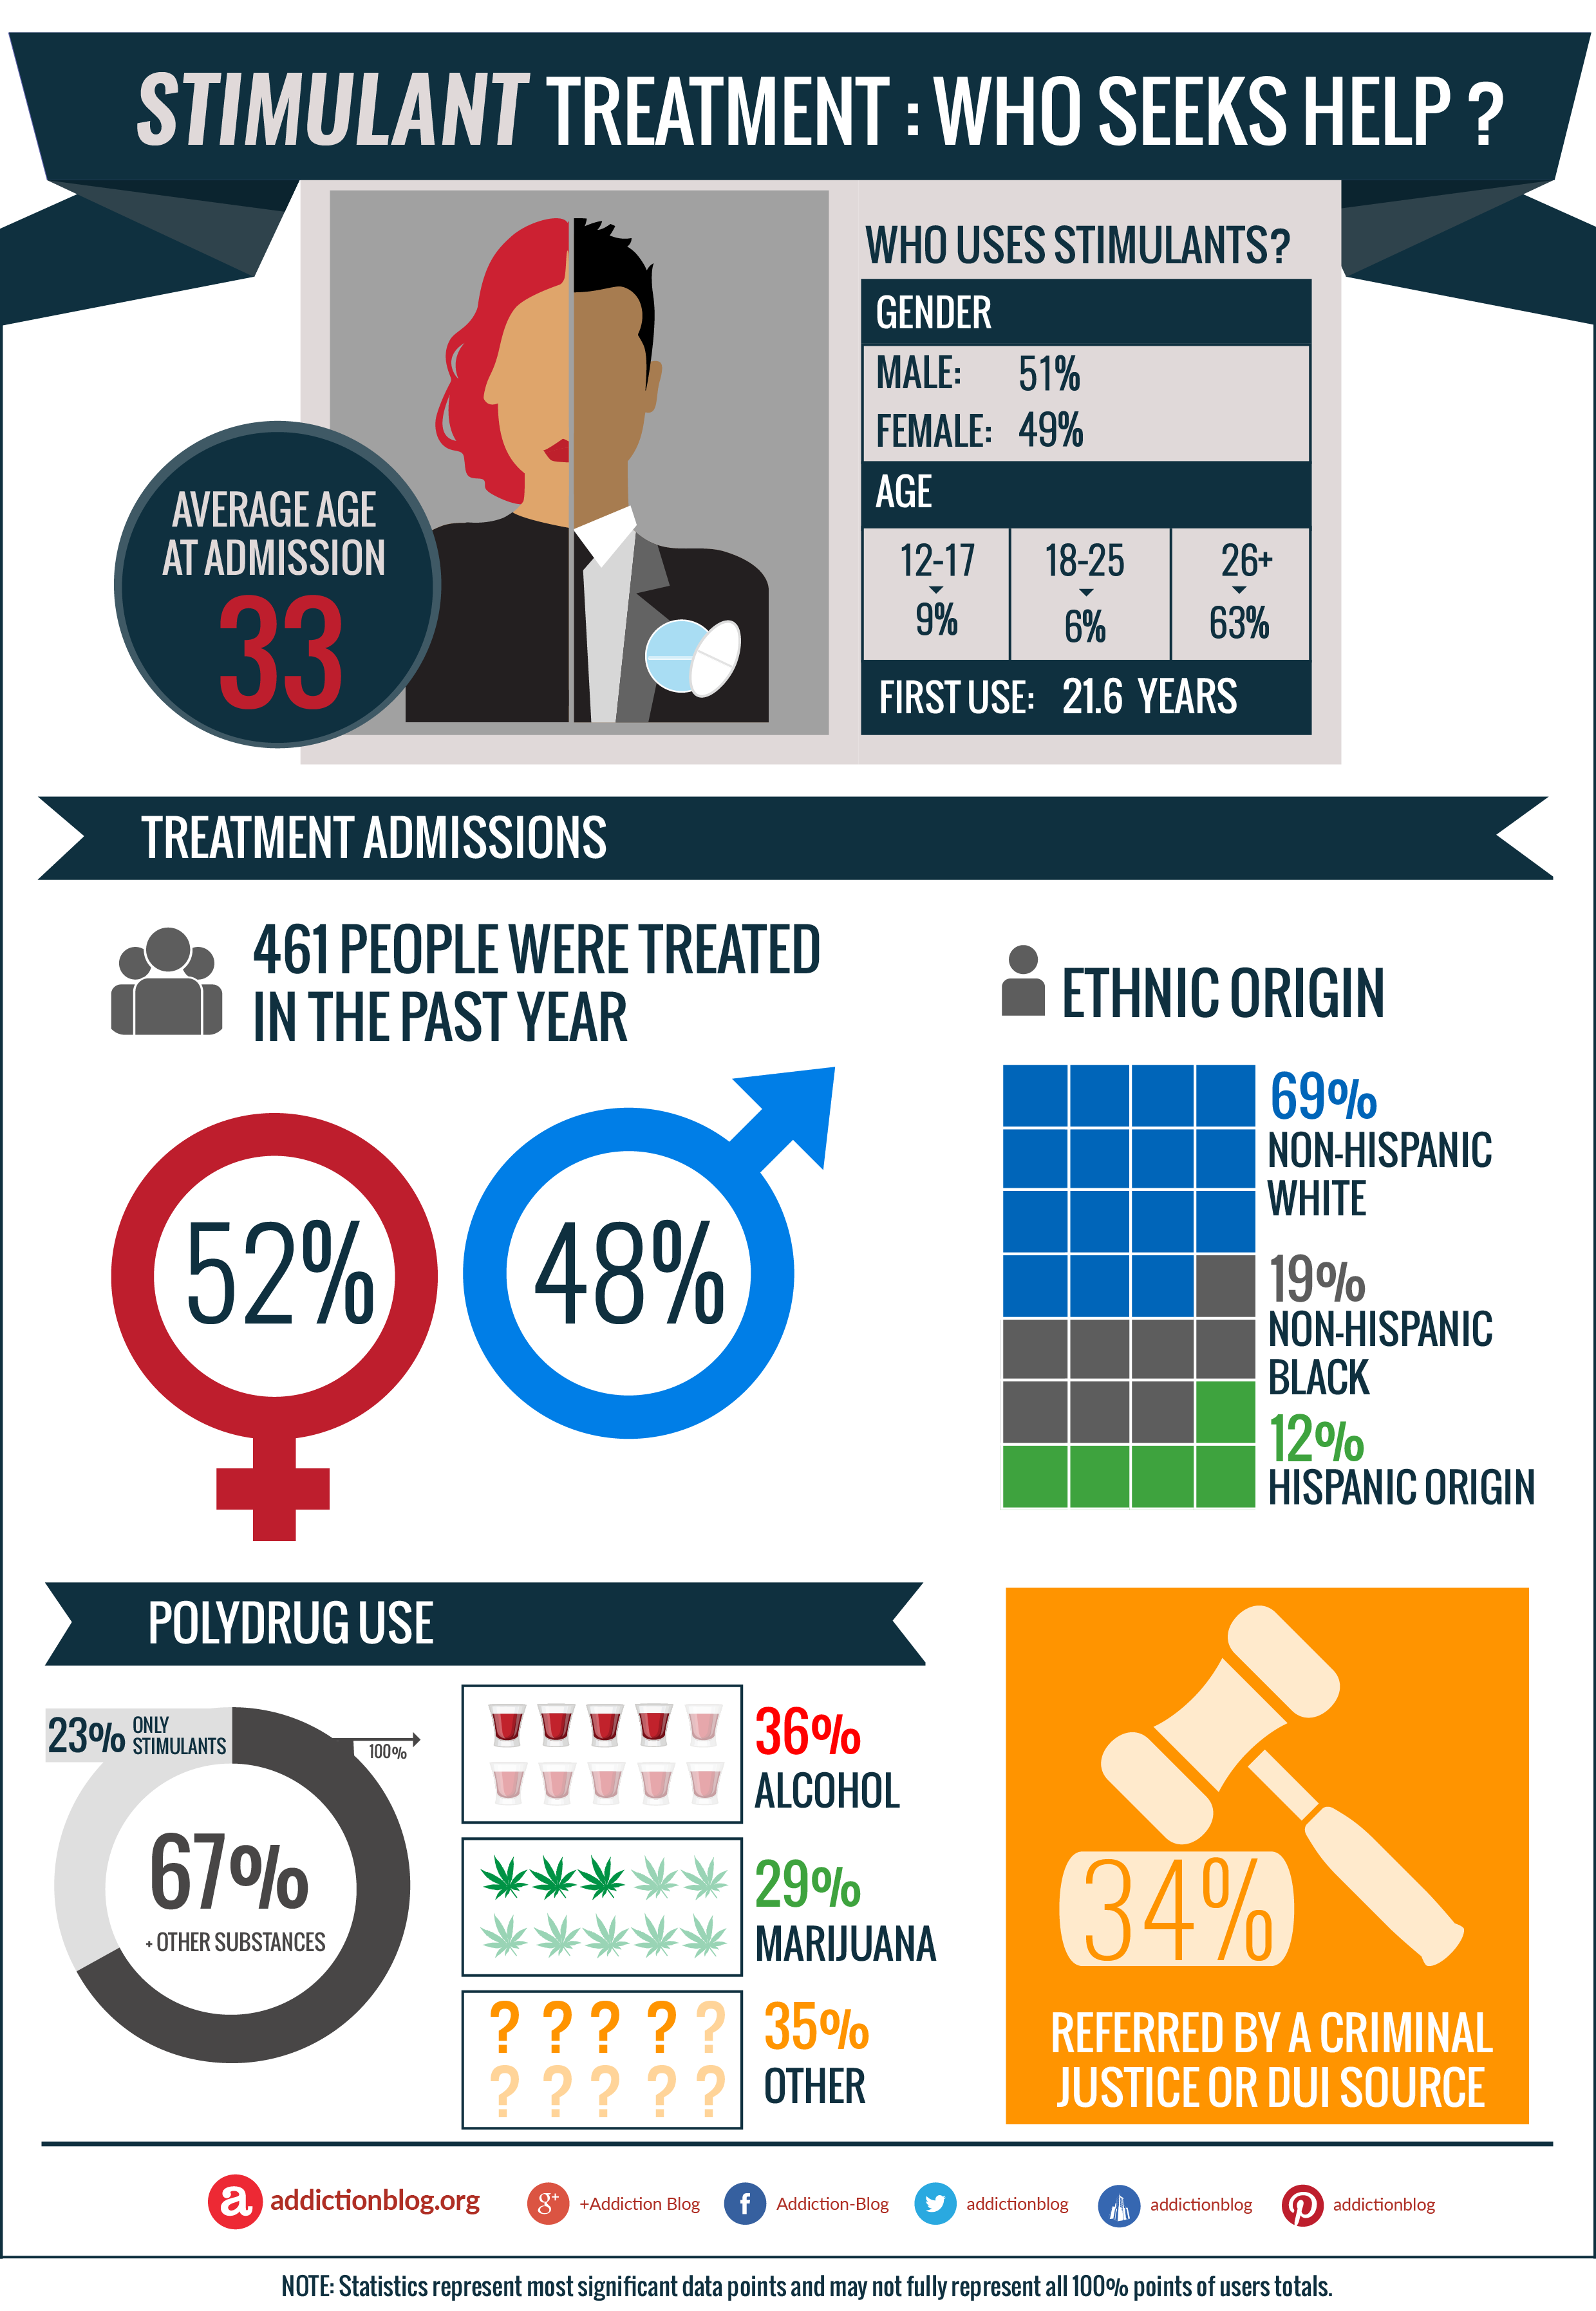 Stimulants addiction treatment: Who seeks help for stimulant drug abuse? (INFOGRAPHIC)